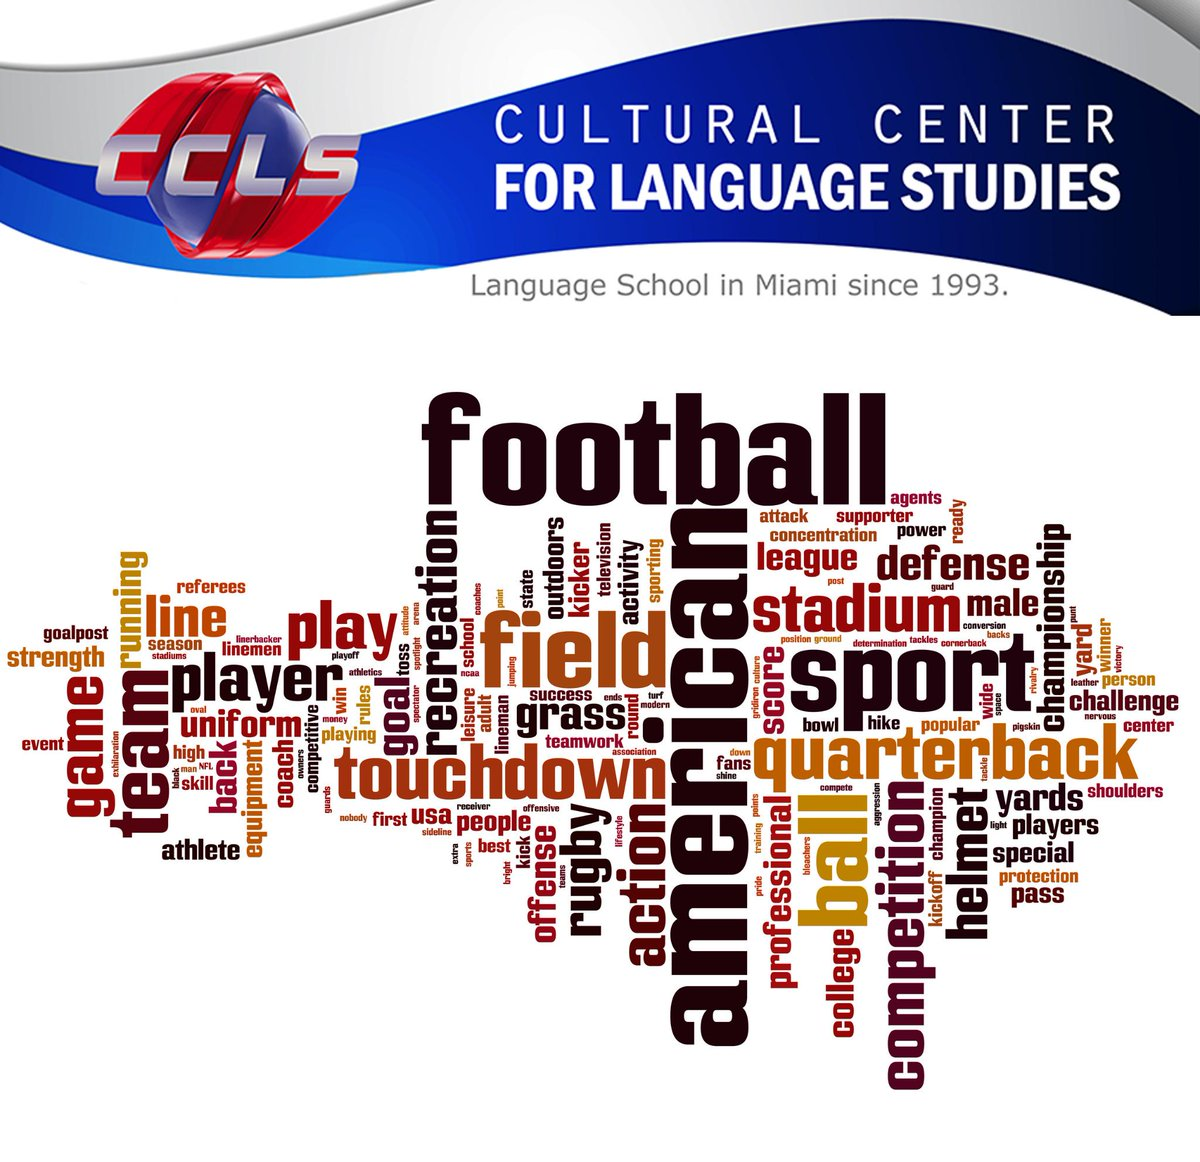 CCLS Language School on Twitter: